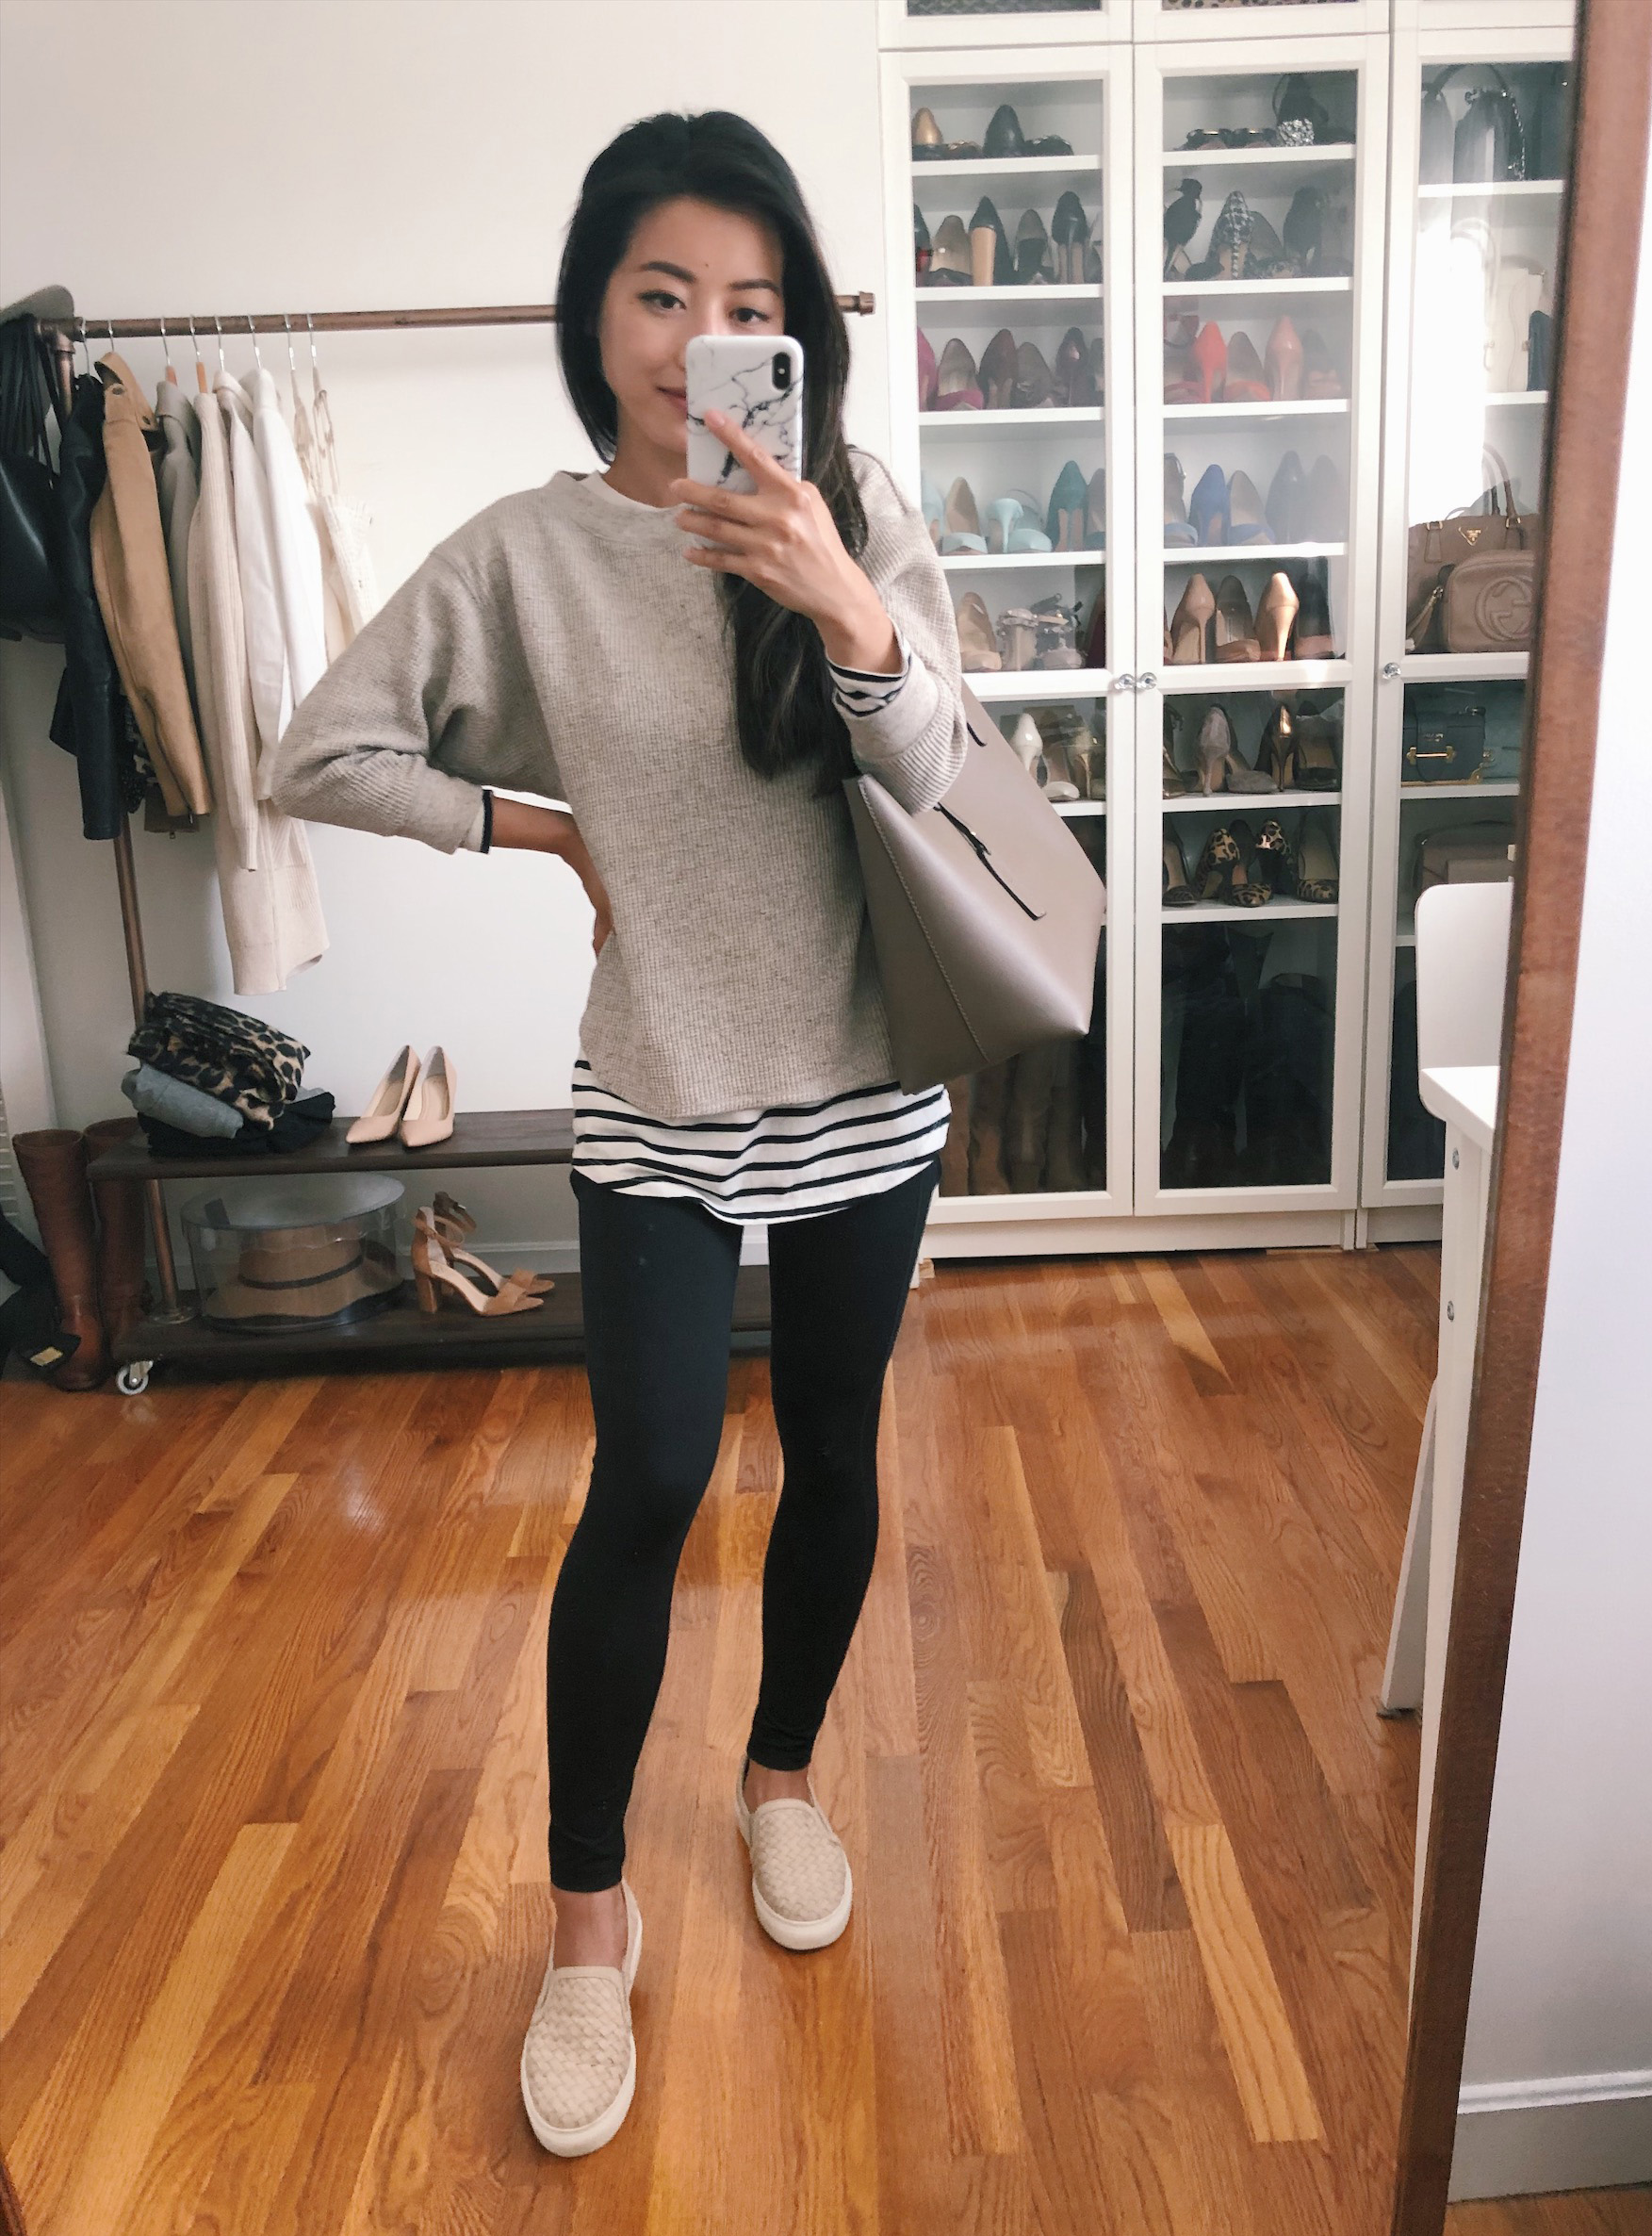 Boston style blogger, Extra Petite shares five ways to style black leggings on a petite frame. Check out the outfits she created with black Zella leggings.